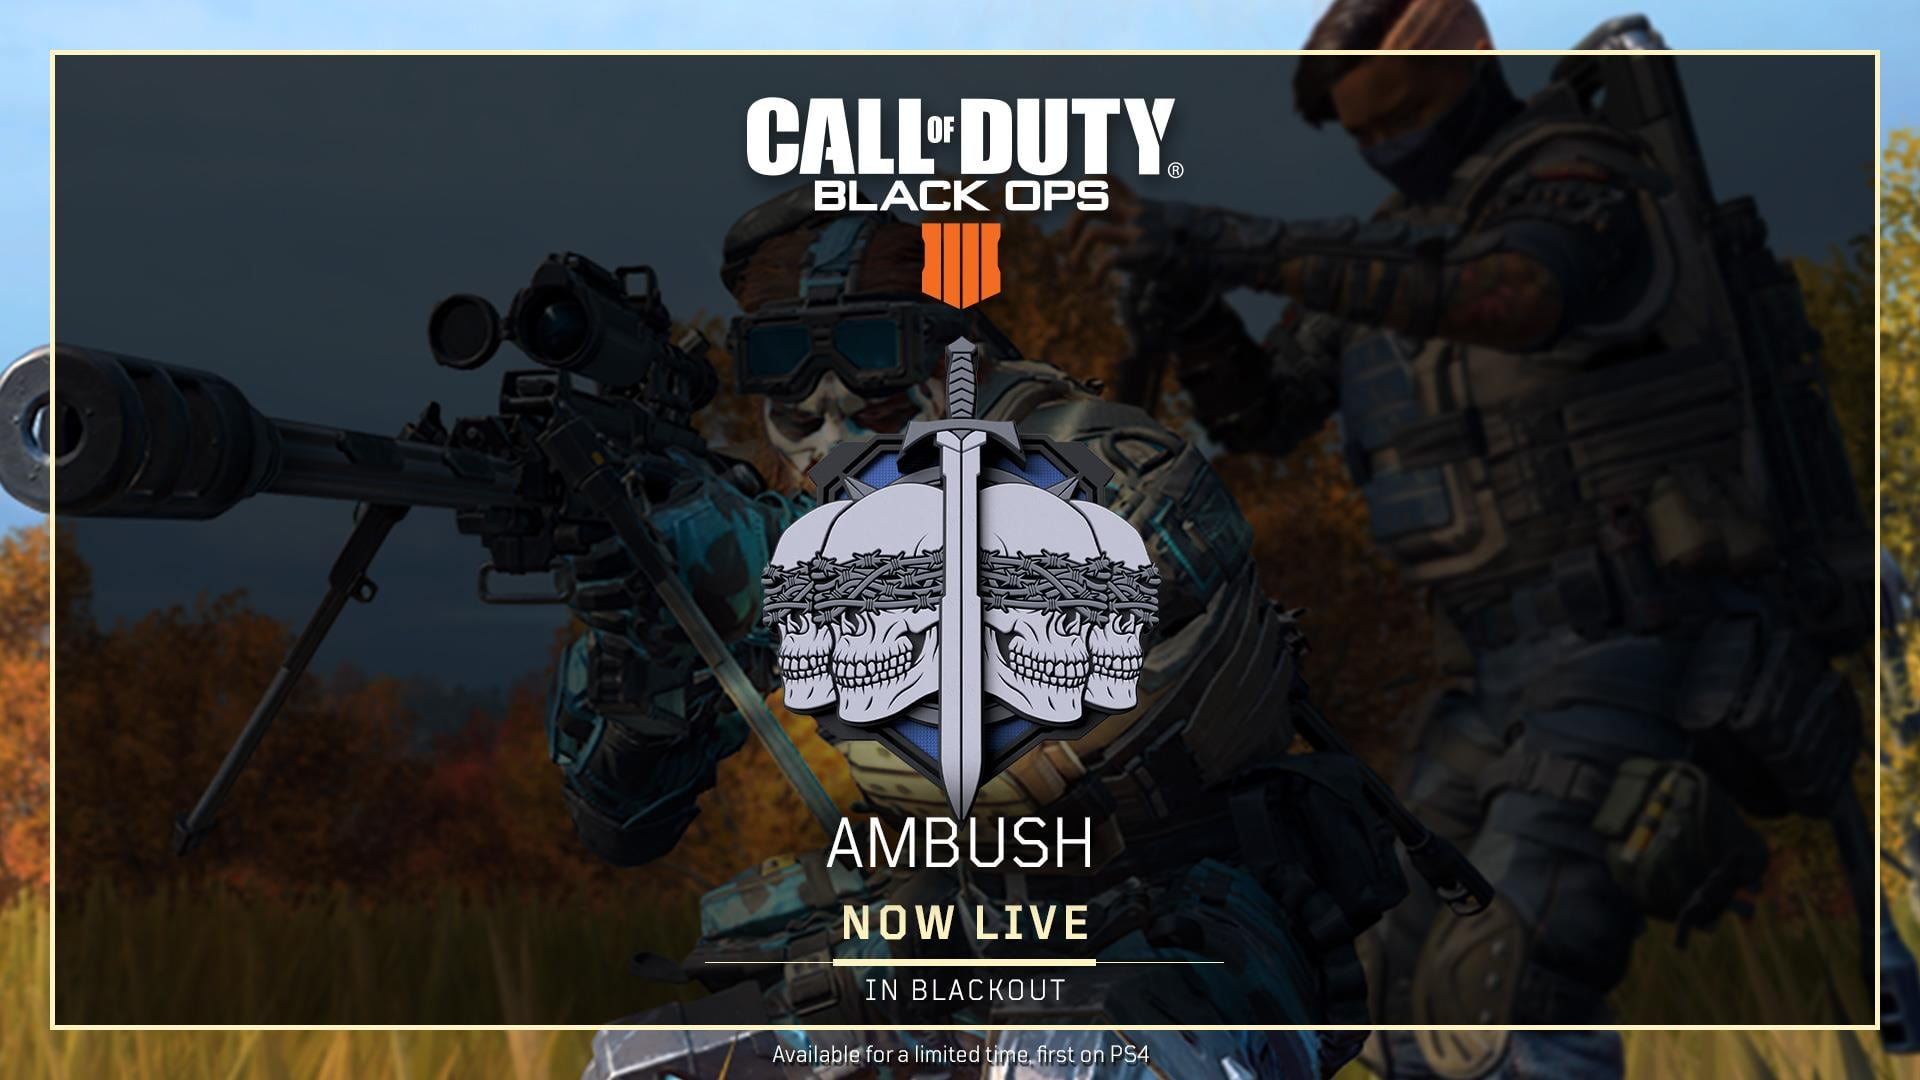 Call of Duty: Black Ops 4 Update Adds Ambush to Blackout